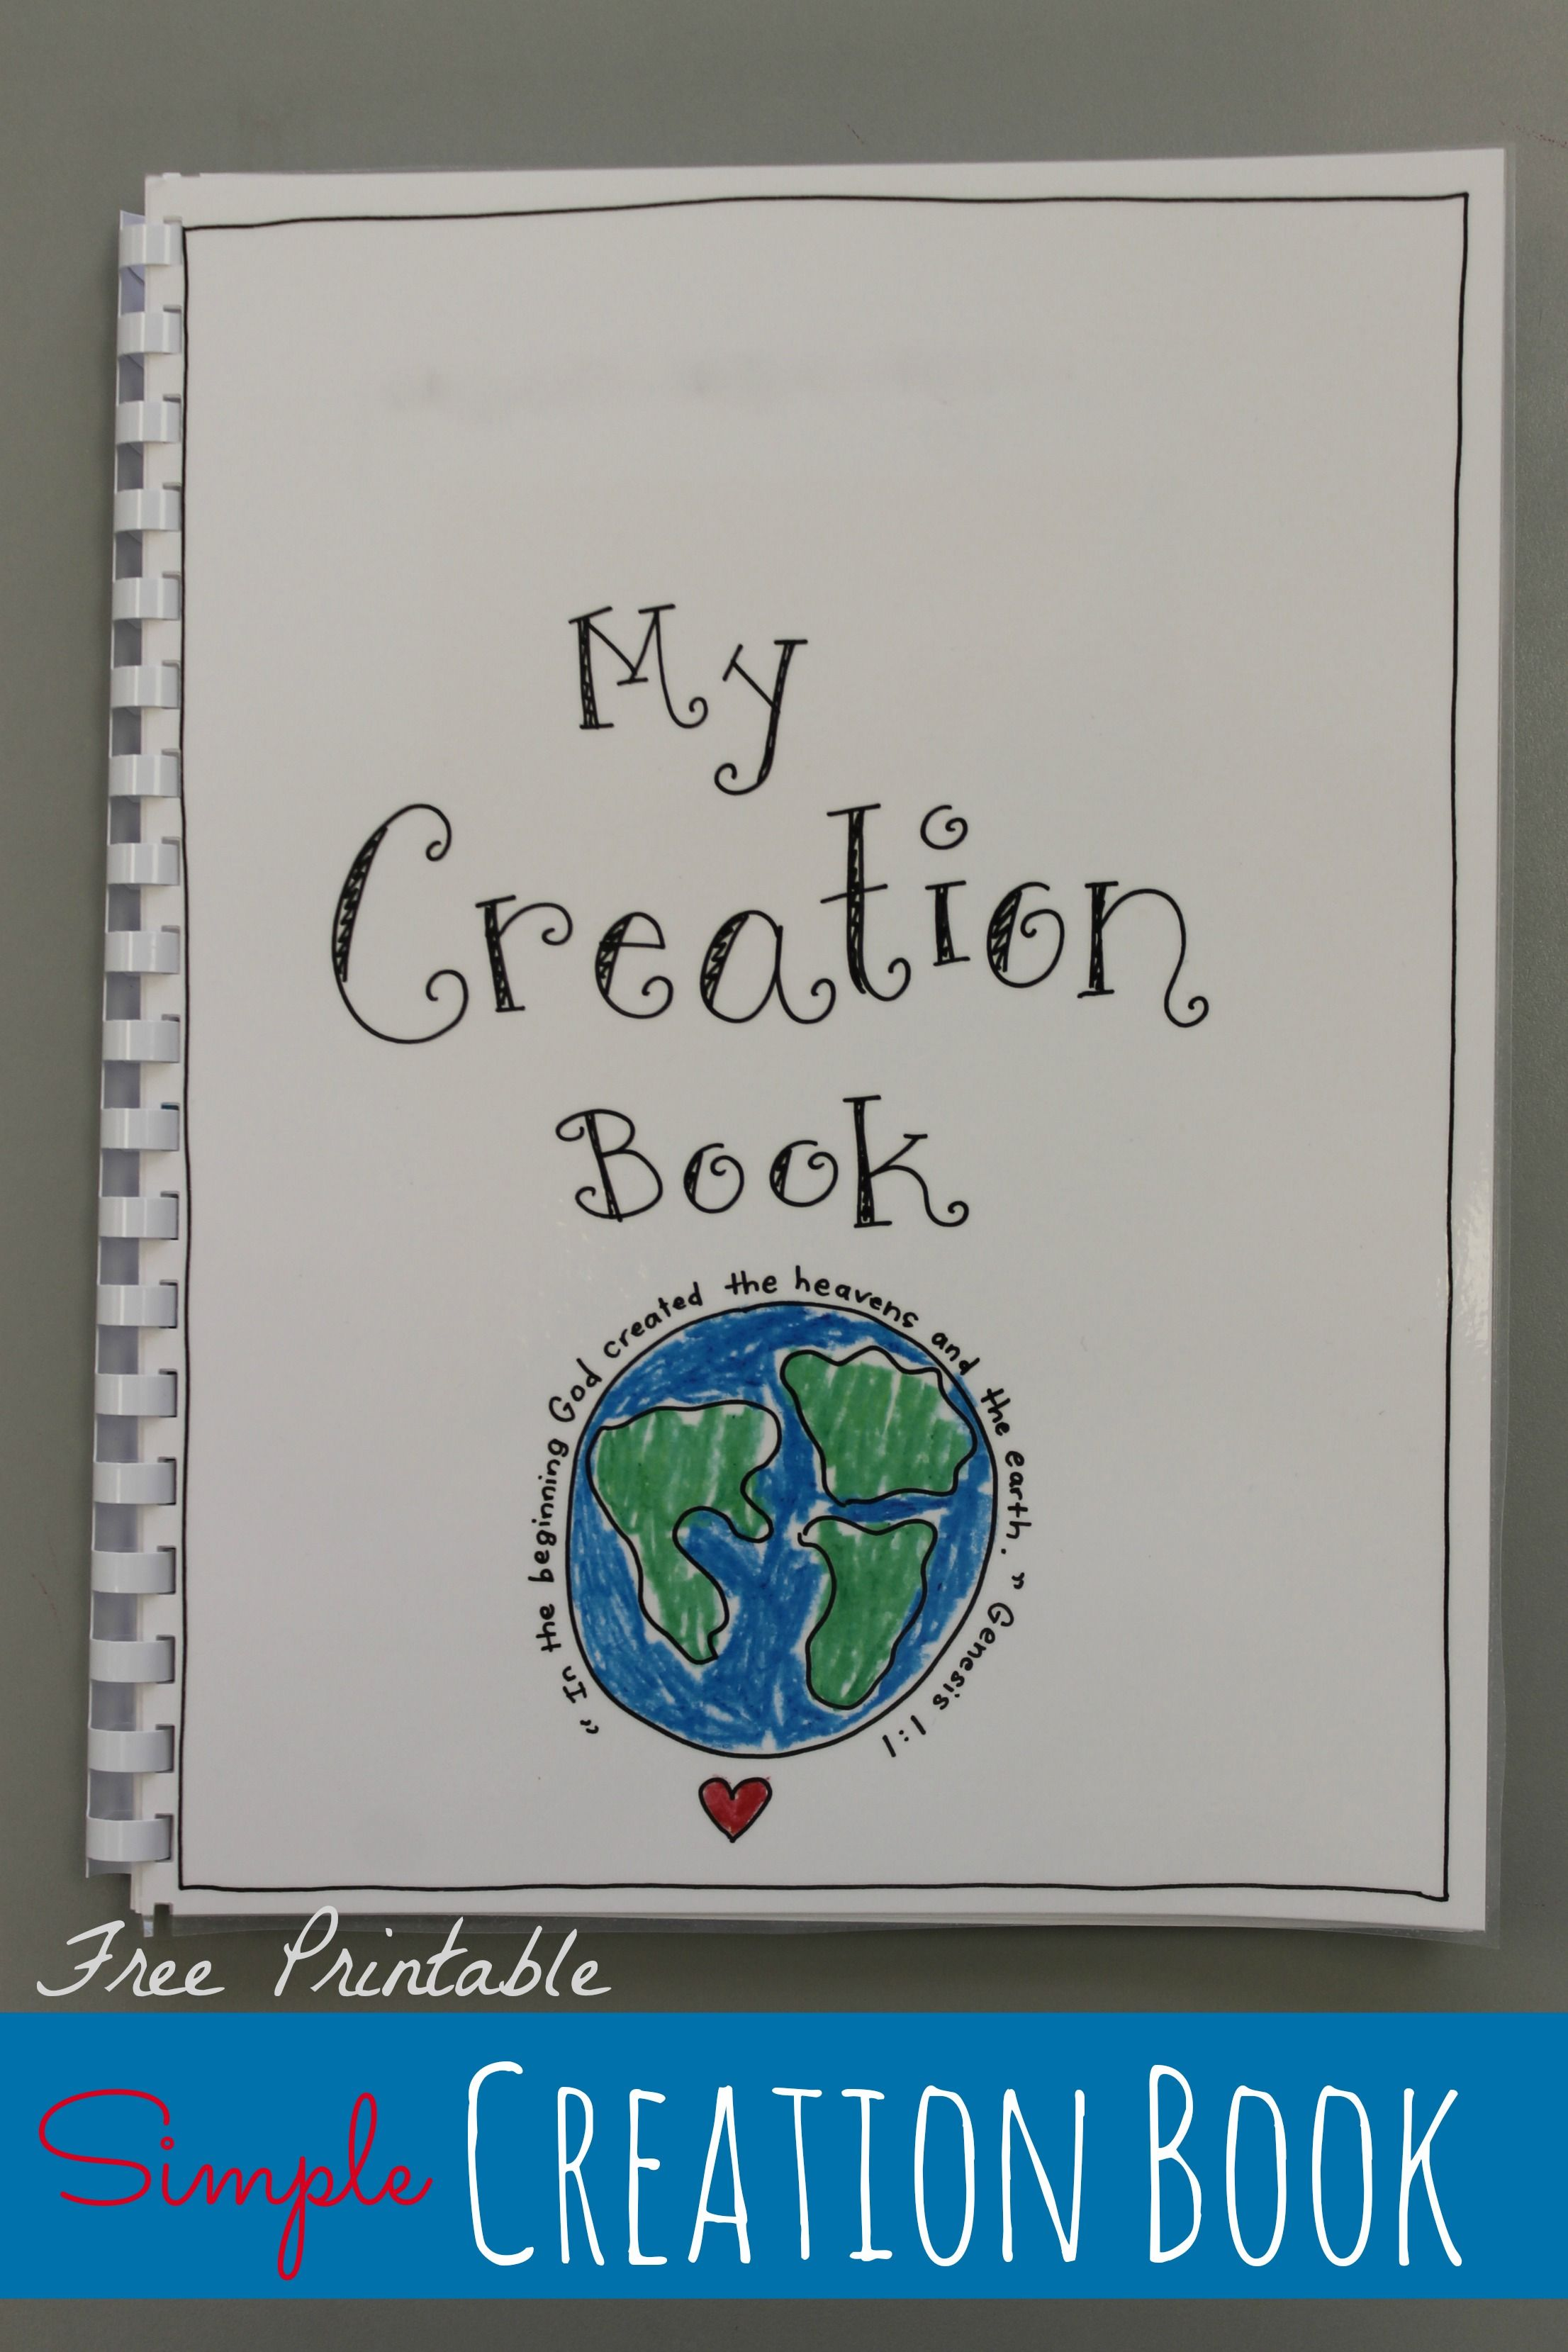 Free printable creation book craft at happyhomefairy com